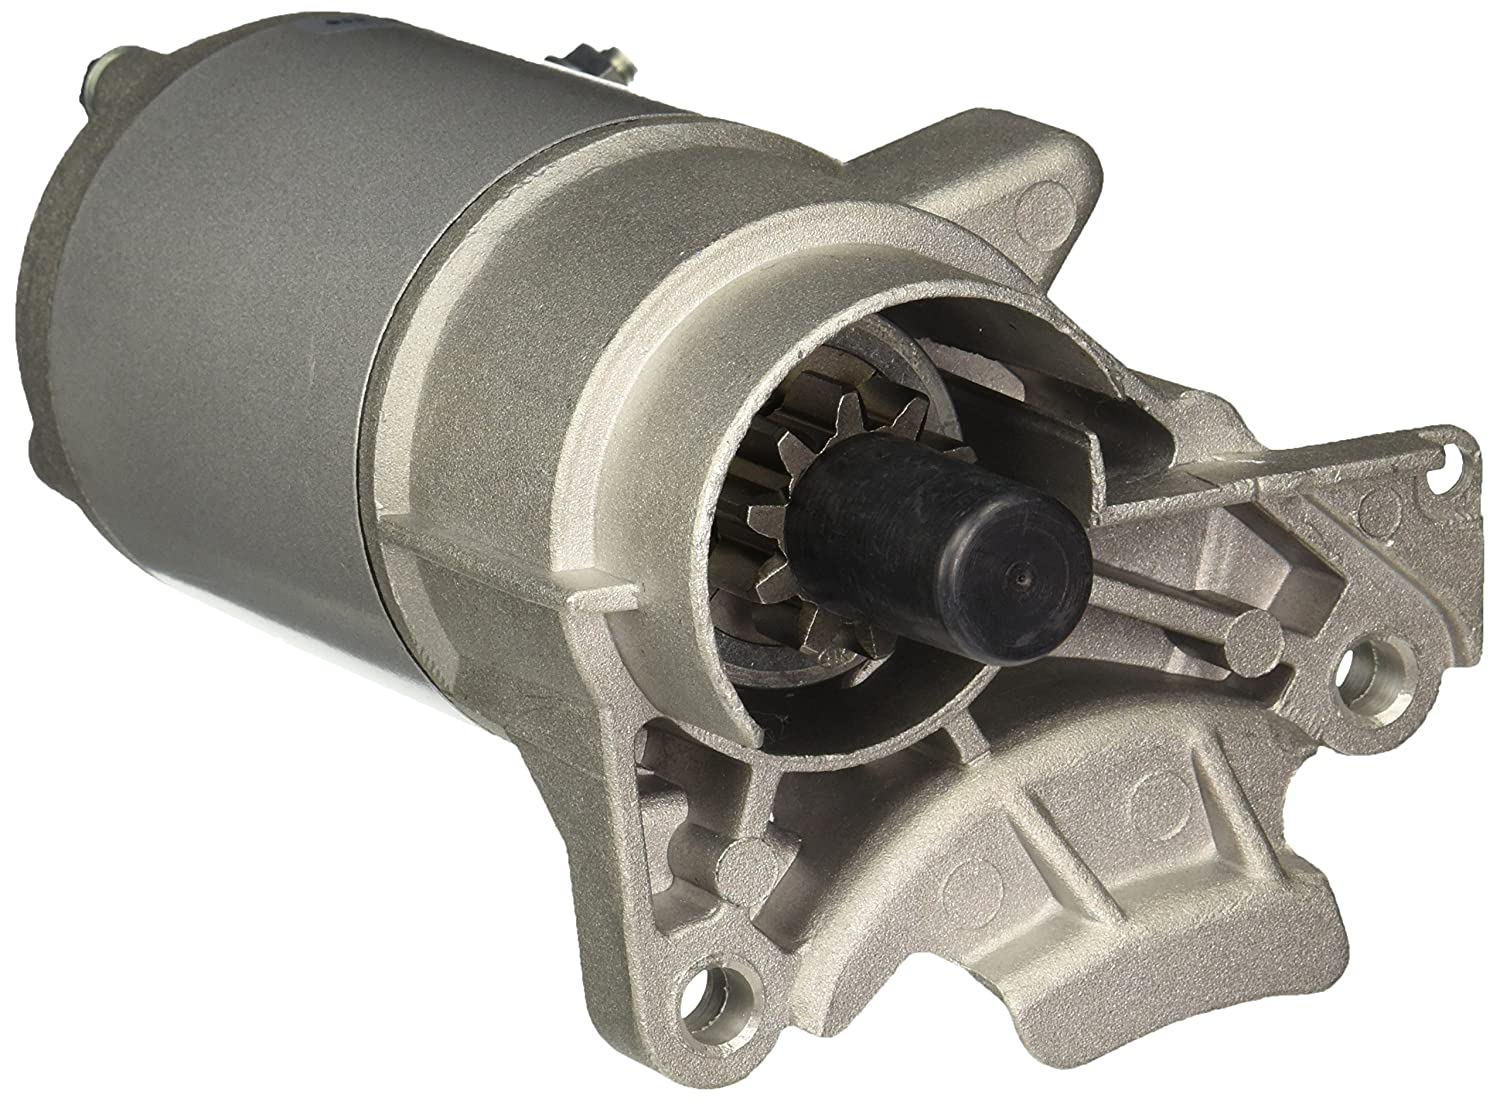 DB Electrical SAB0146 Starter for Honda Engine 31200-Zf5A-L310, 31200Zf5L32, 31200Zf5Al310, 31200-Zf5-L32